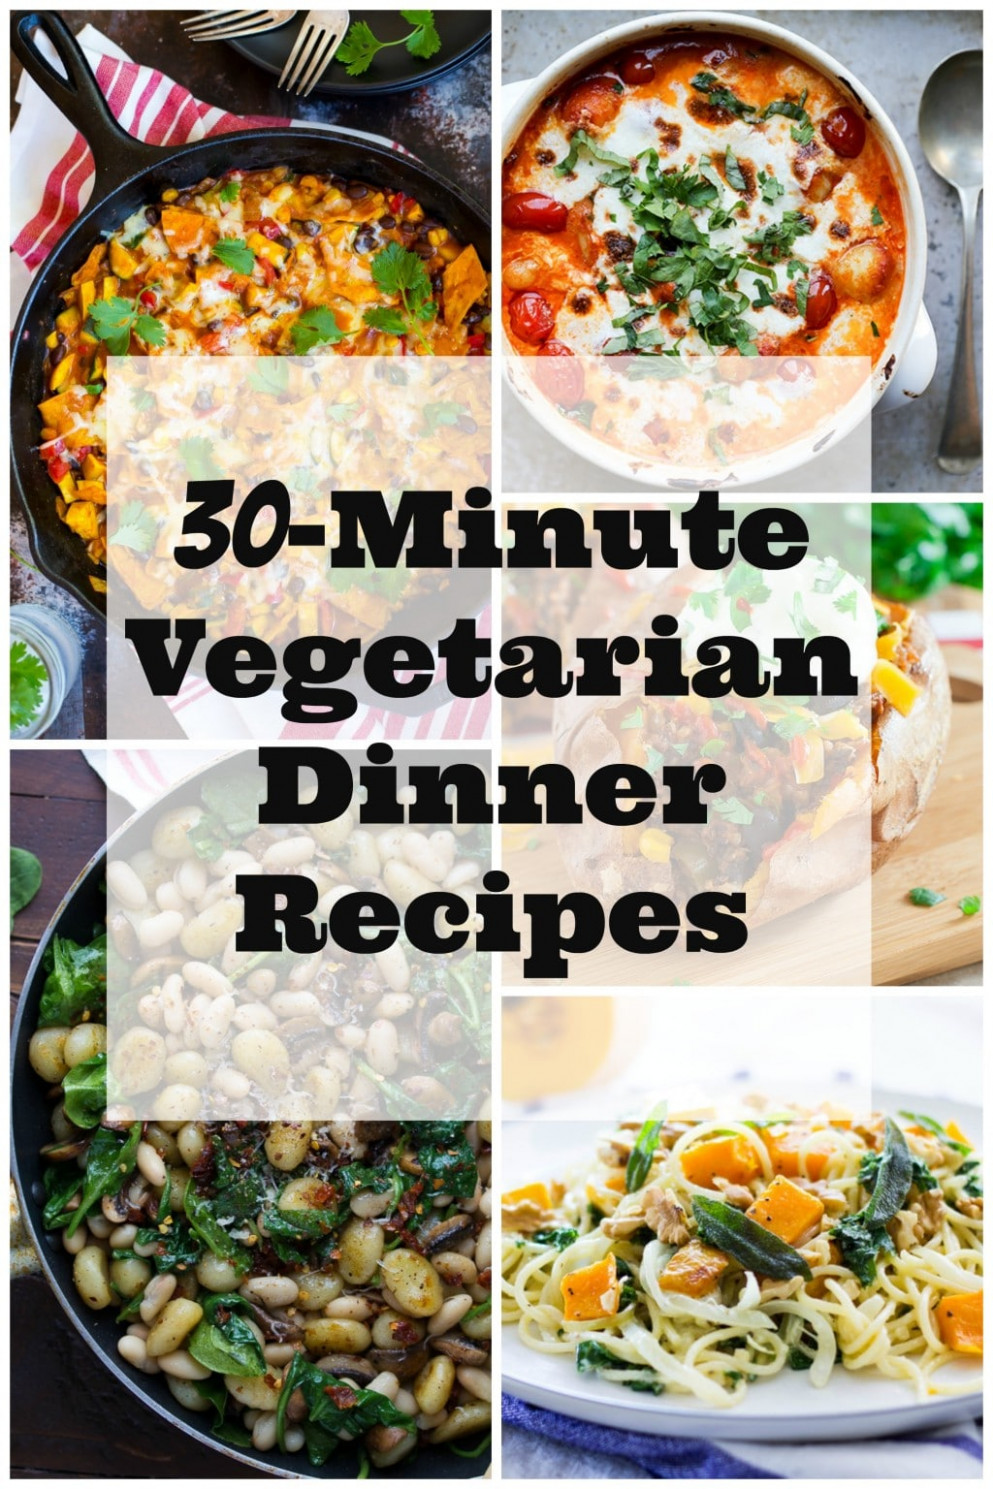 30 Minute Vegetarian Dinner Recipes - She Likes Food - Recipes Vegetarian Dinner